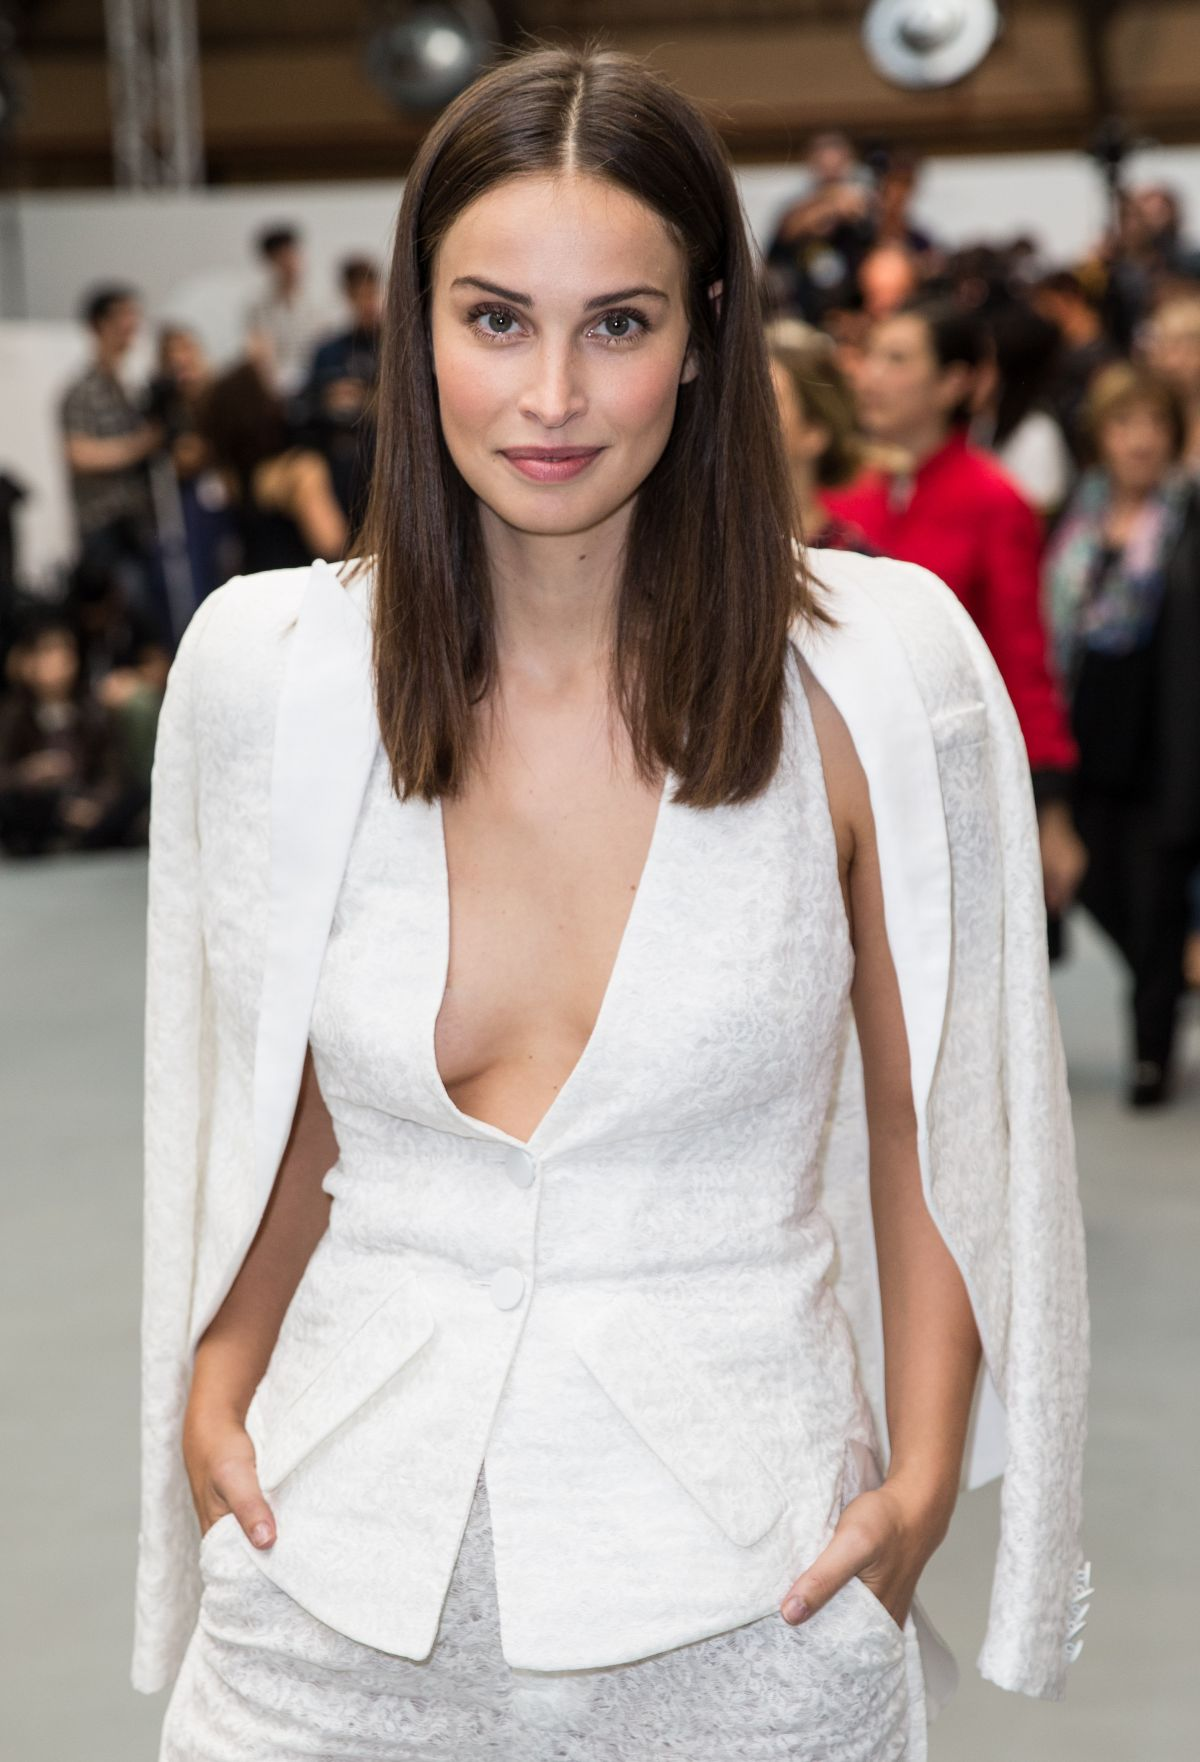 HEIDA REED at Antonio Beradi Fashion Show at London Fashion Week 09/19/2016